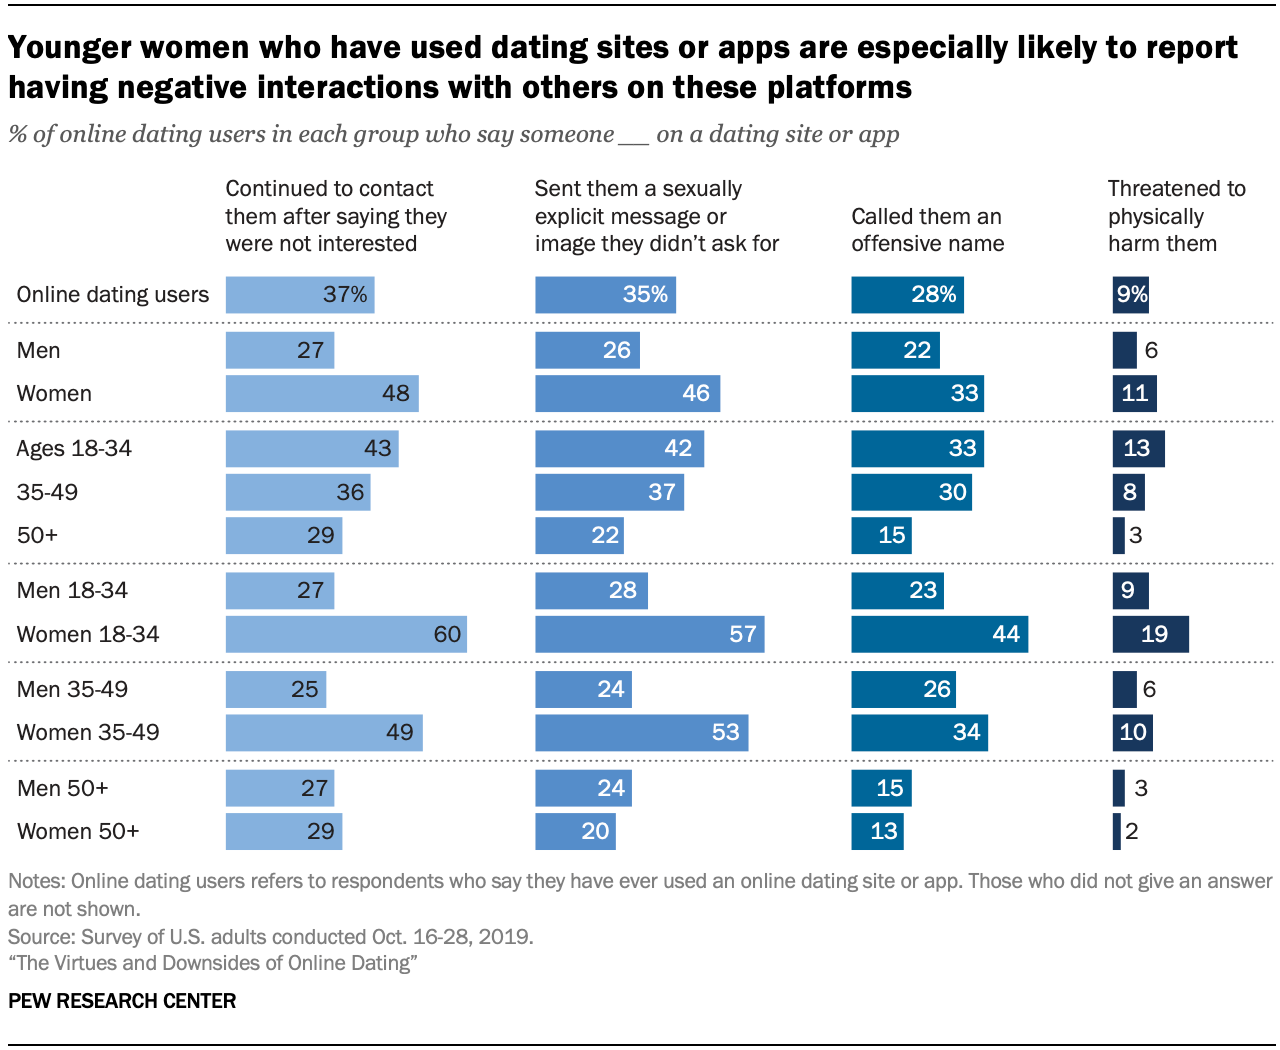 Younger women who have used dating sites or apps are especially likely to report having negative interactions with others on these platforms